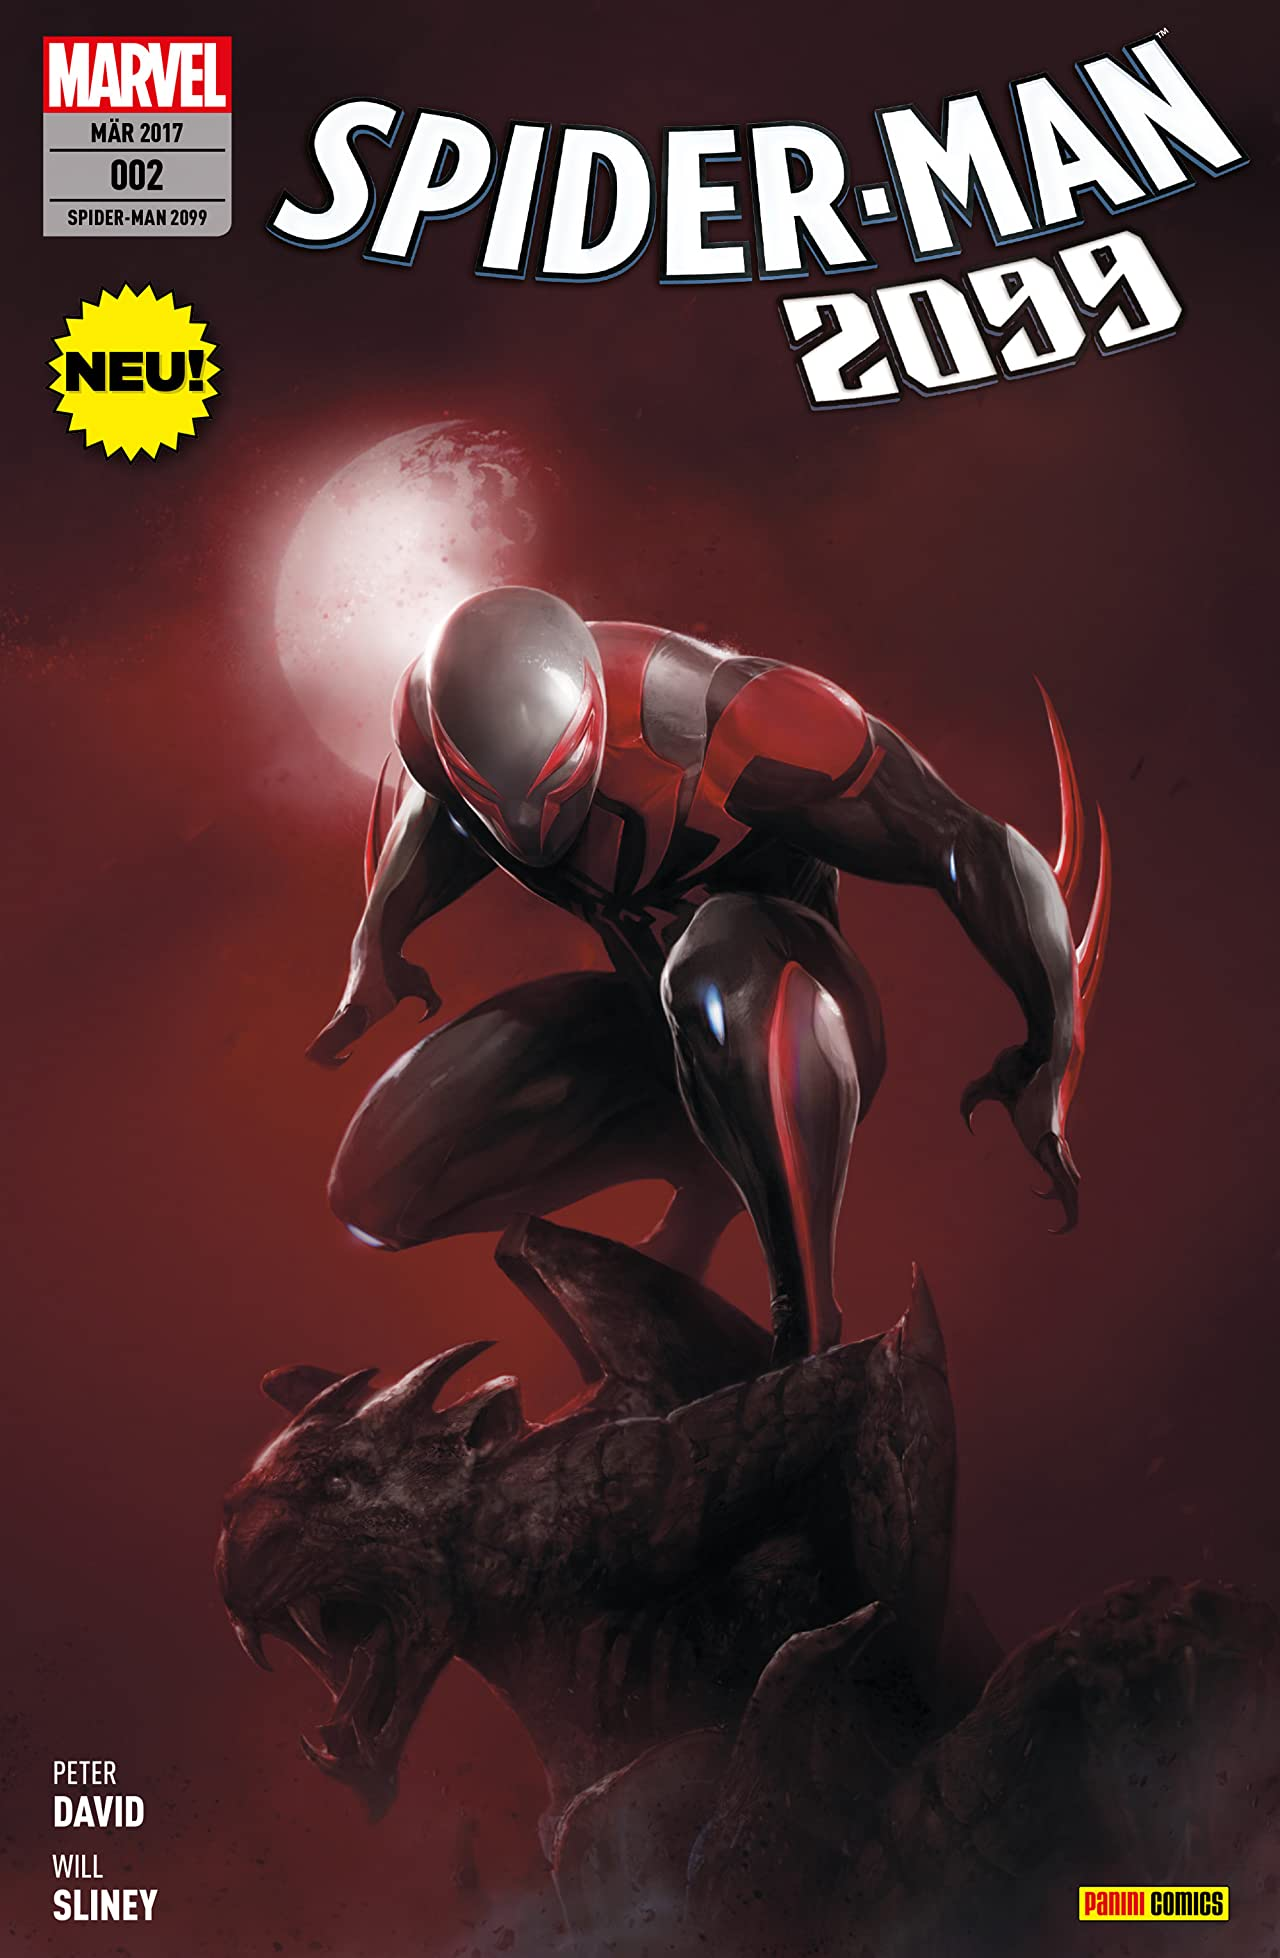 Spider-Man 2099 Vol. 2